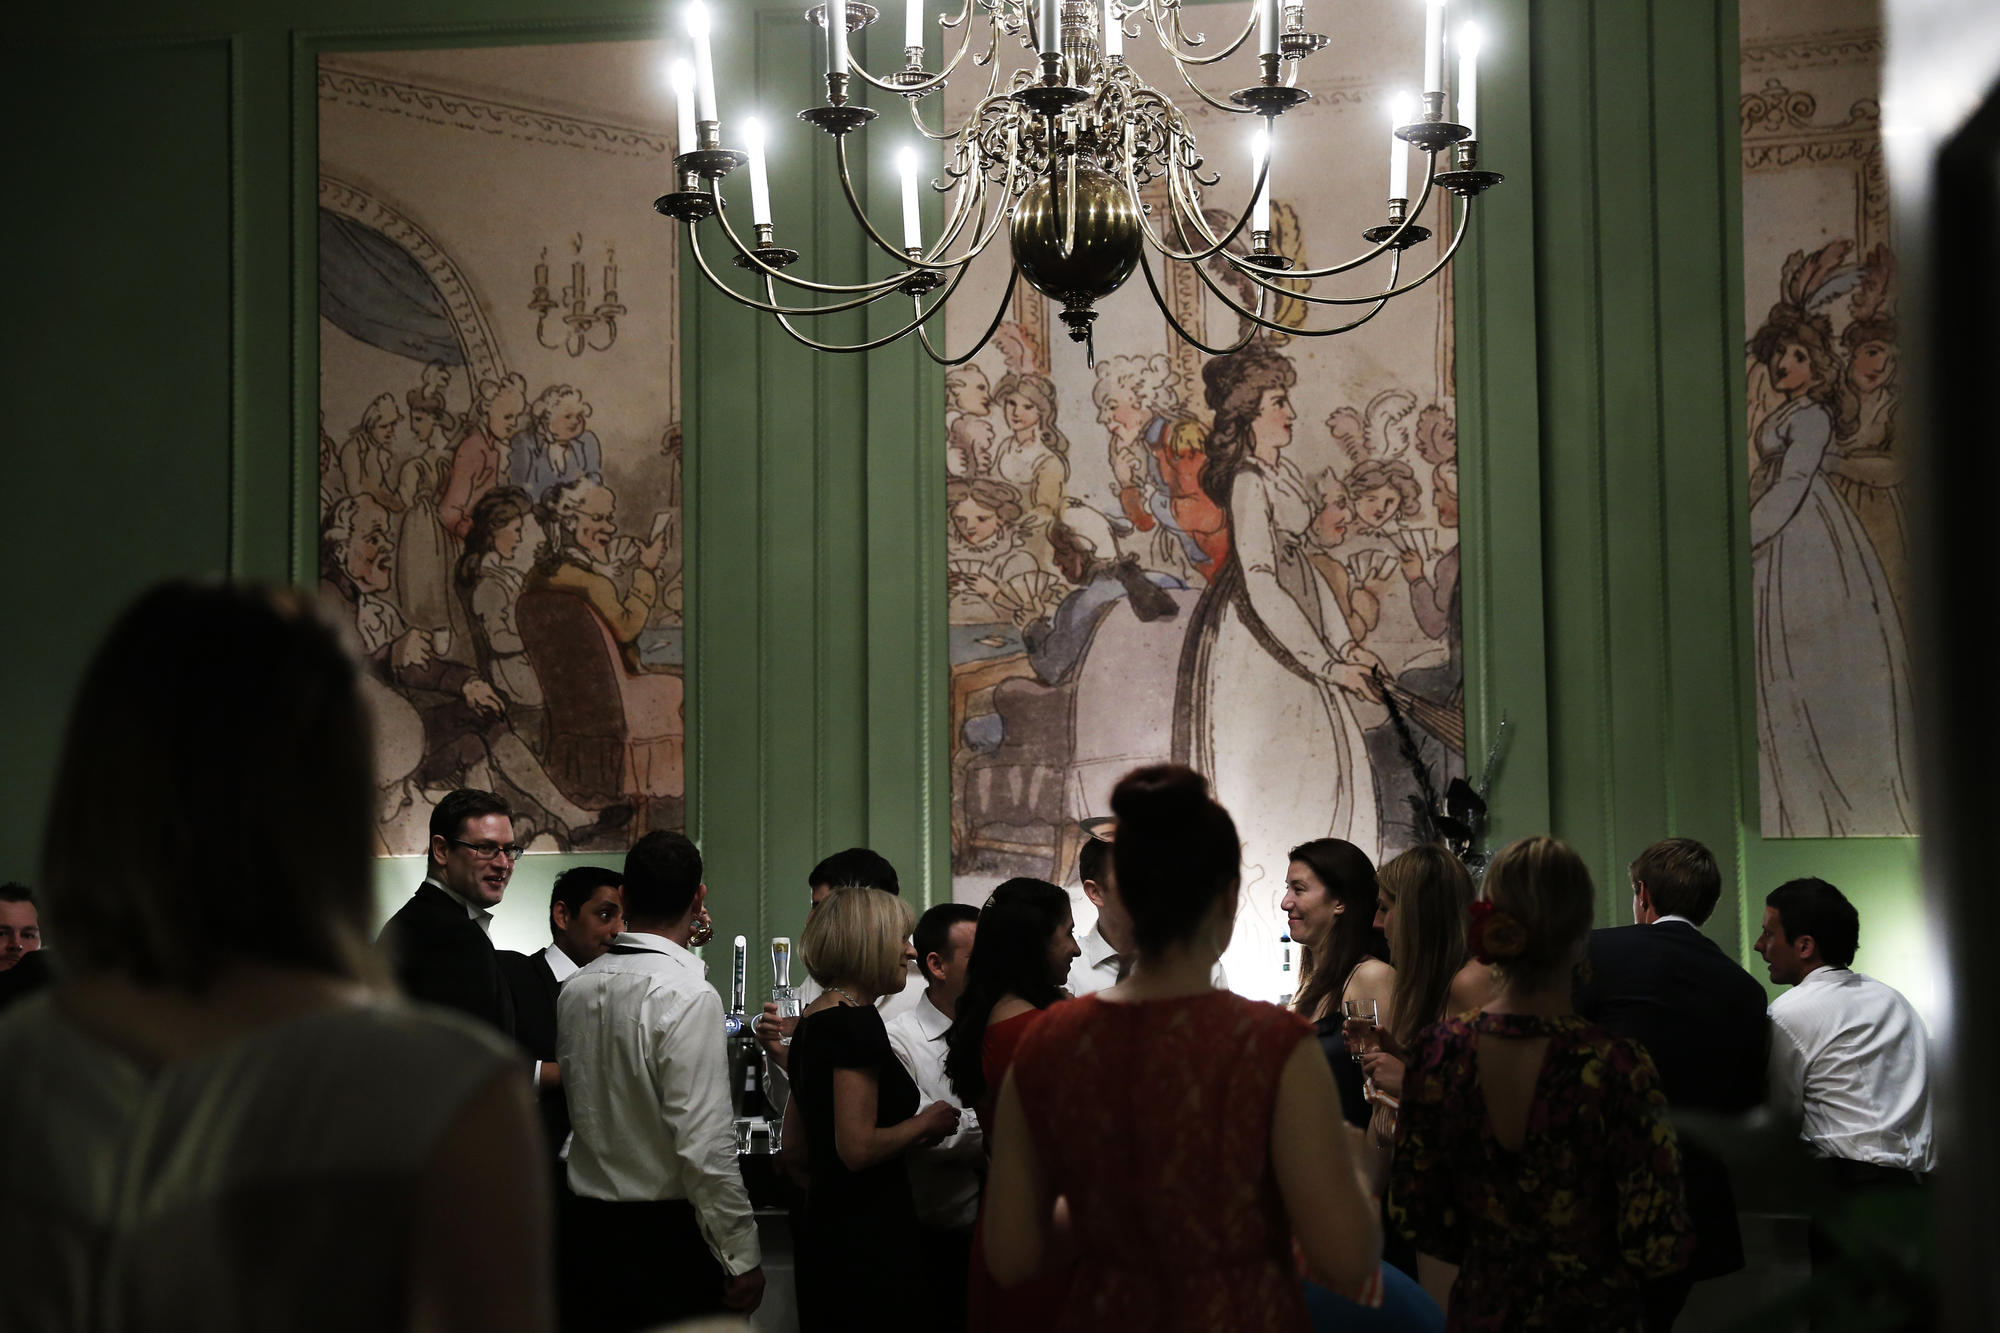 Card room drinks at the Assembly Rooms. Image, Brett Harkness.